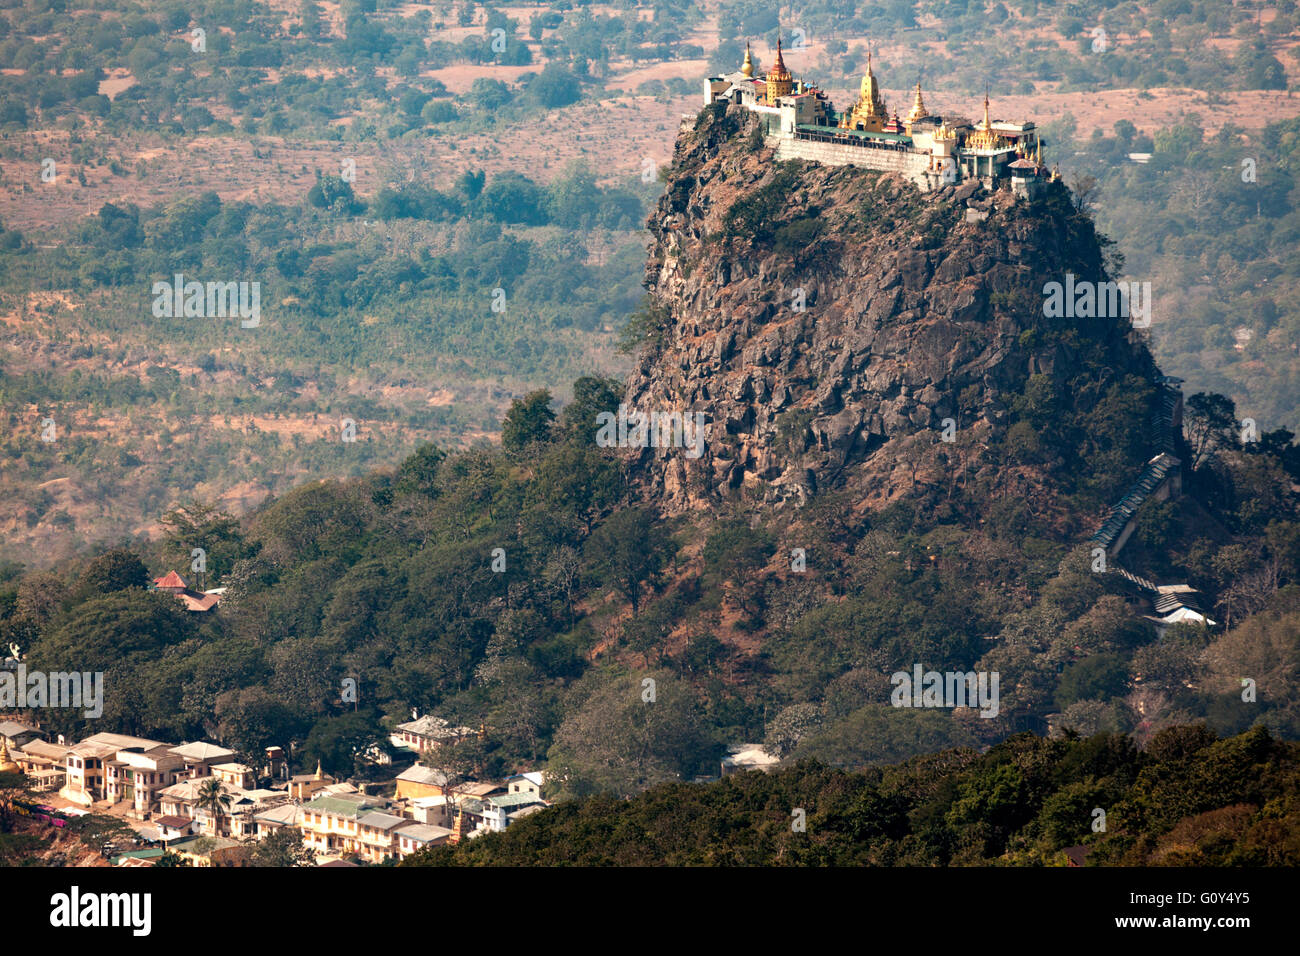 A view from above on the whole of monasteries, stupas and sanctuaries of Taung Kalat Mount Popa (2,427 ft or so). - Stock Image